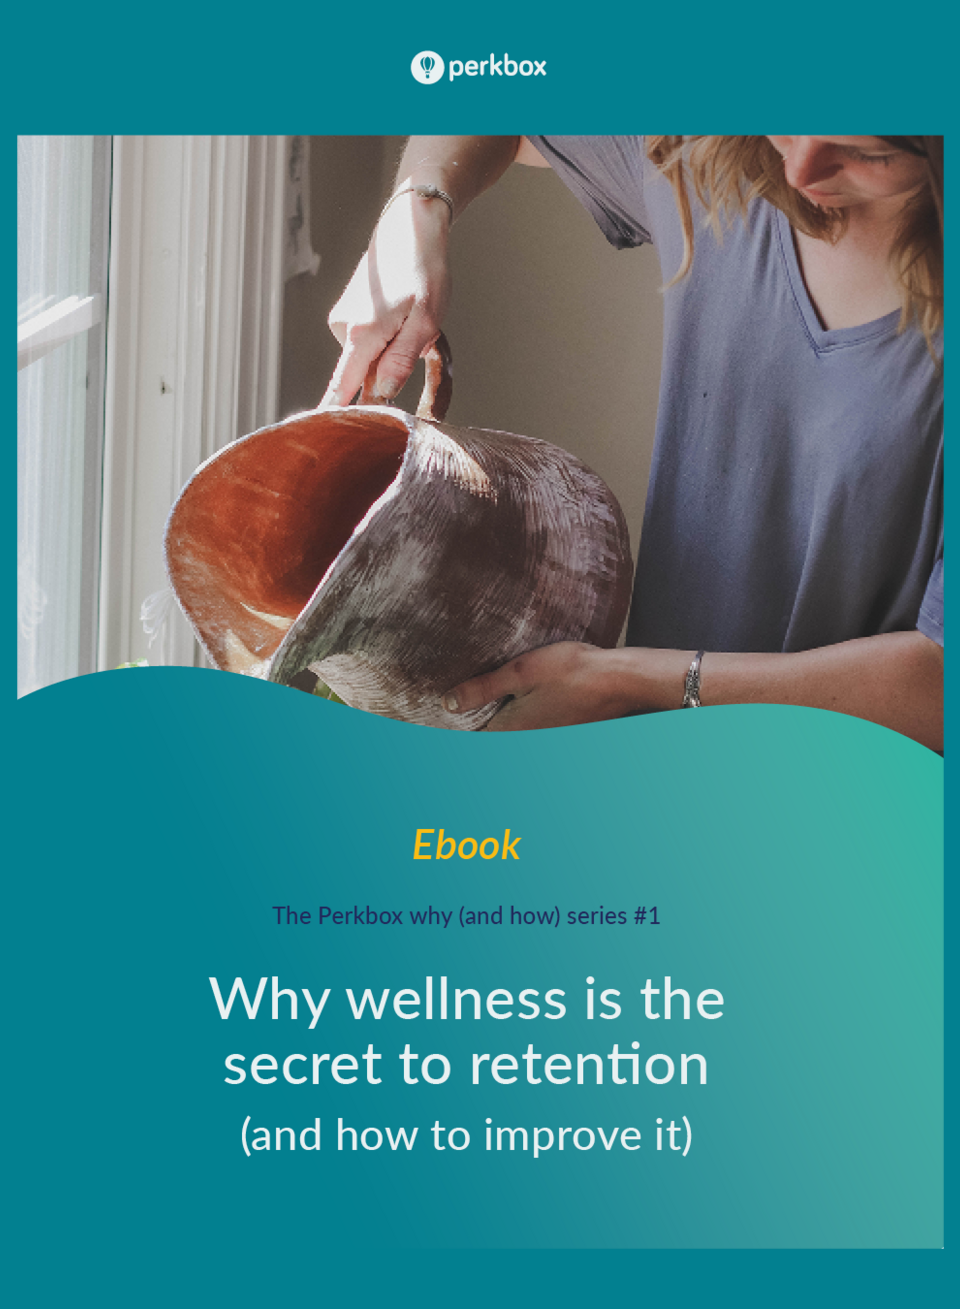 Why wellness is the secret to retention (and how to improve it)